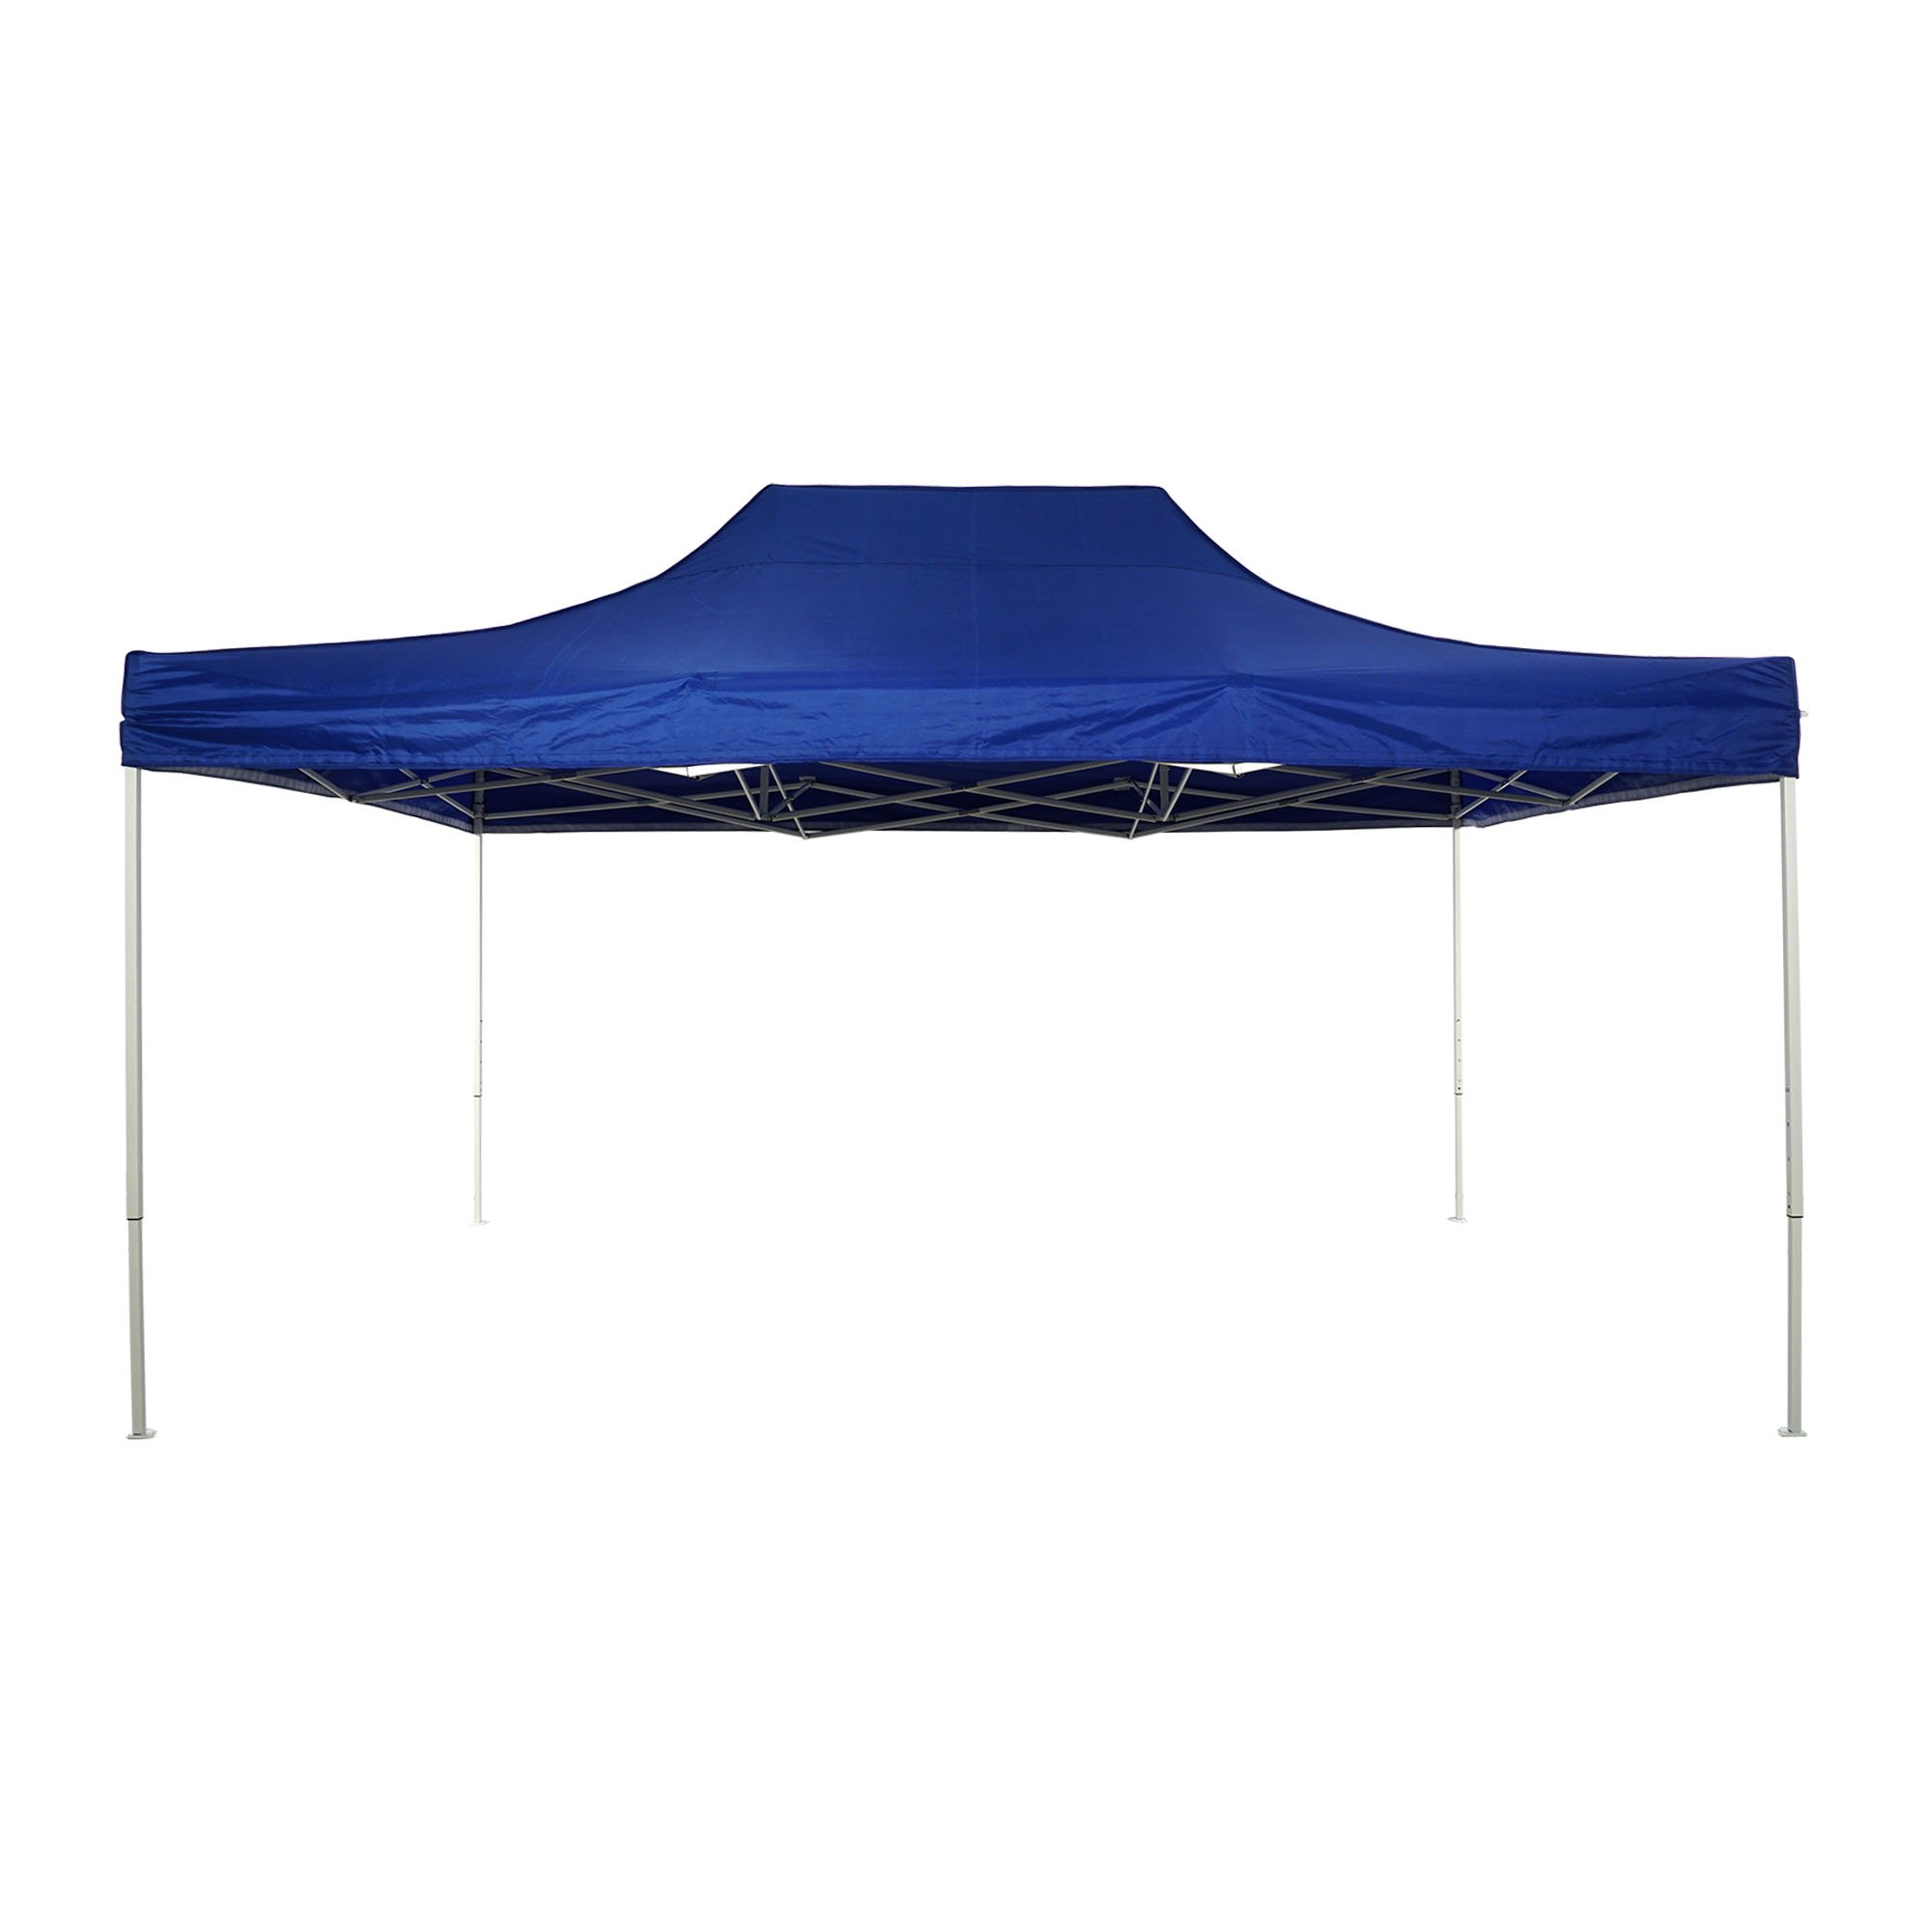 Patio Commercial Canopy White Steel Frame Heavy Duty Pop Up Party Festival Instant Shelter Canopy (10 x 15 Feet, Blue)